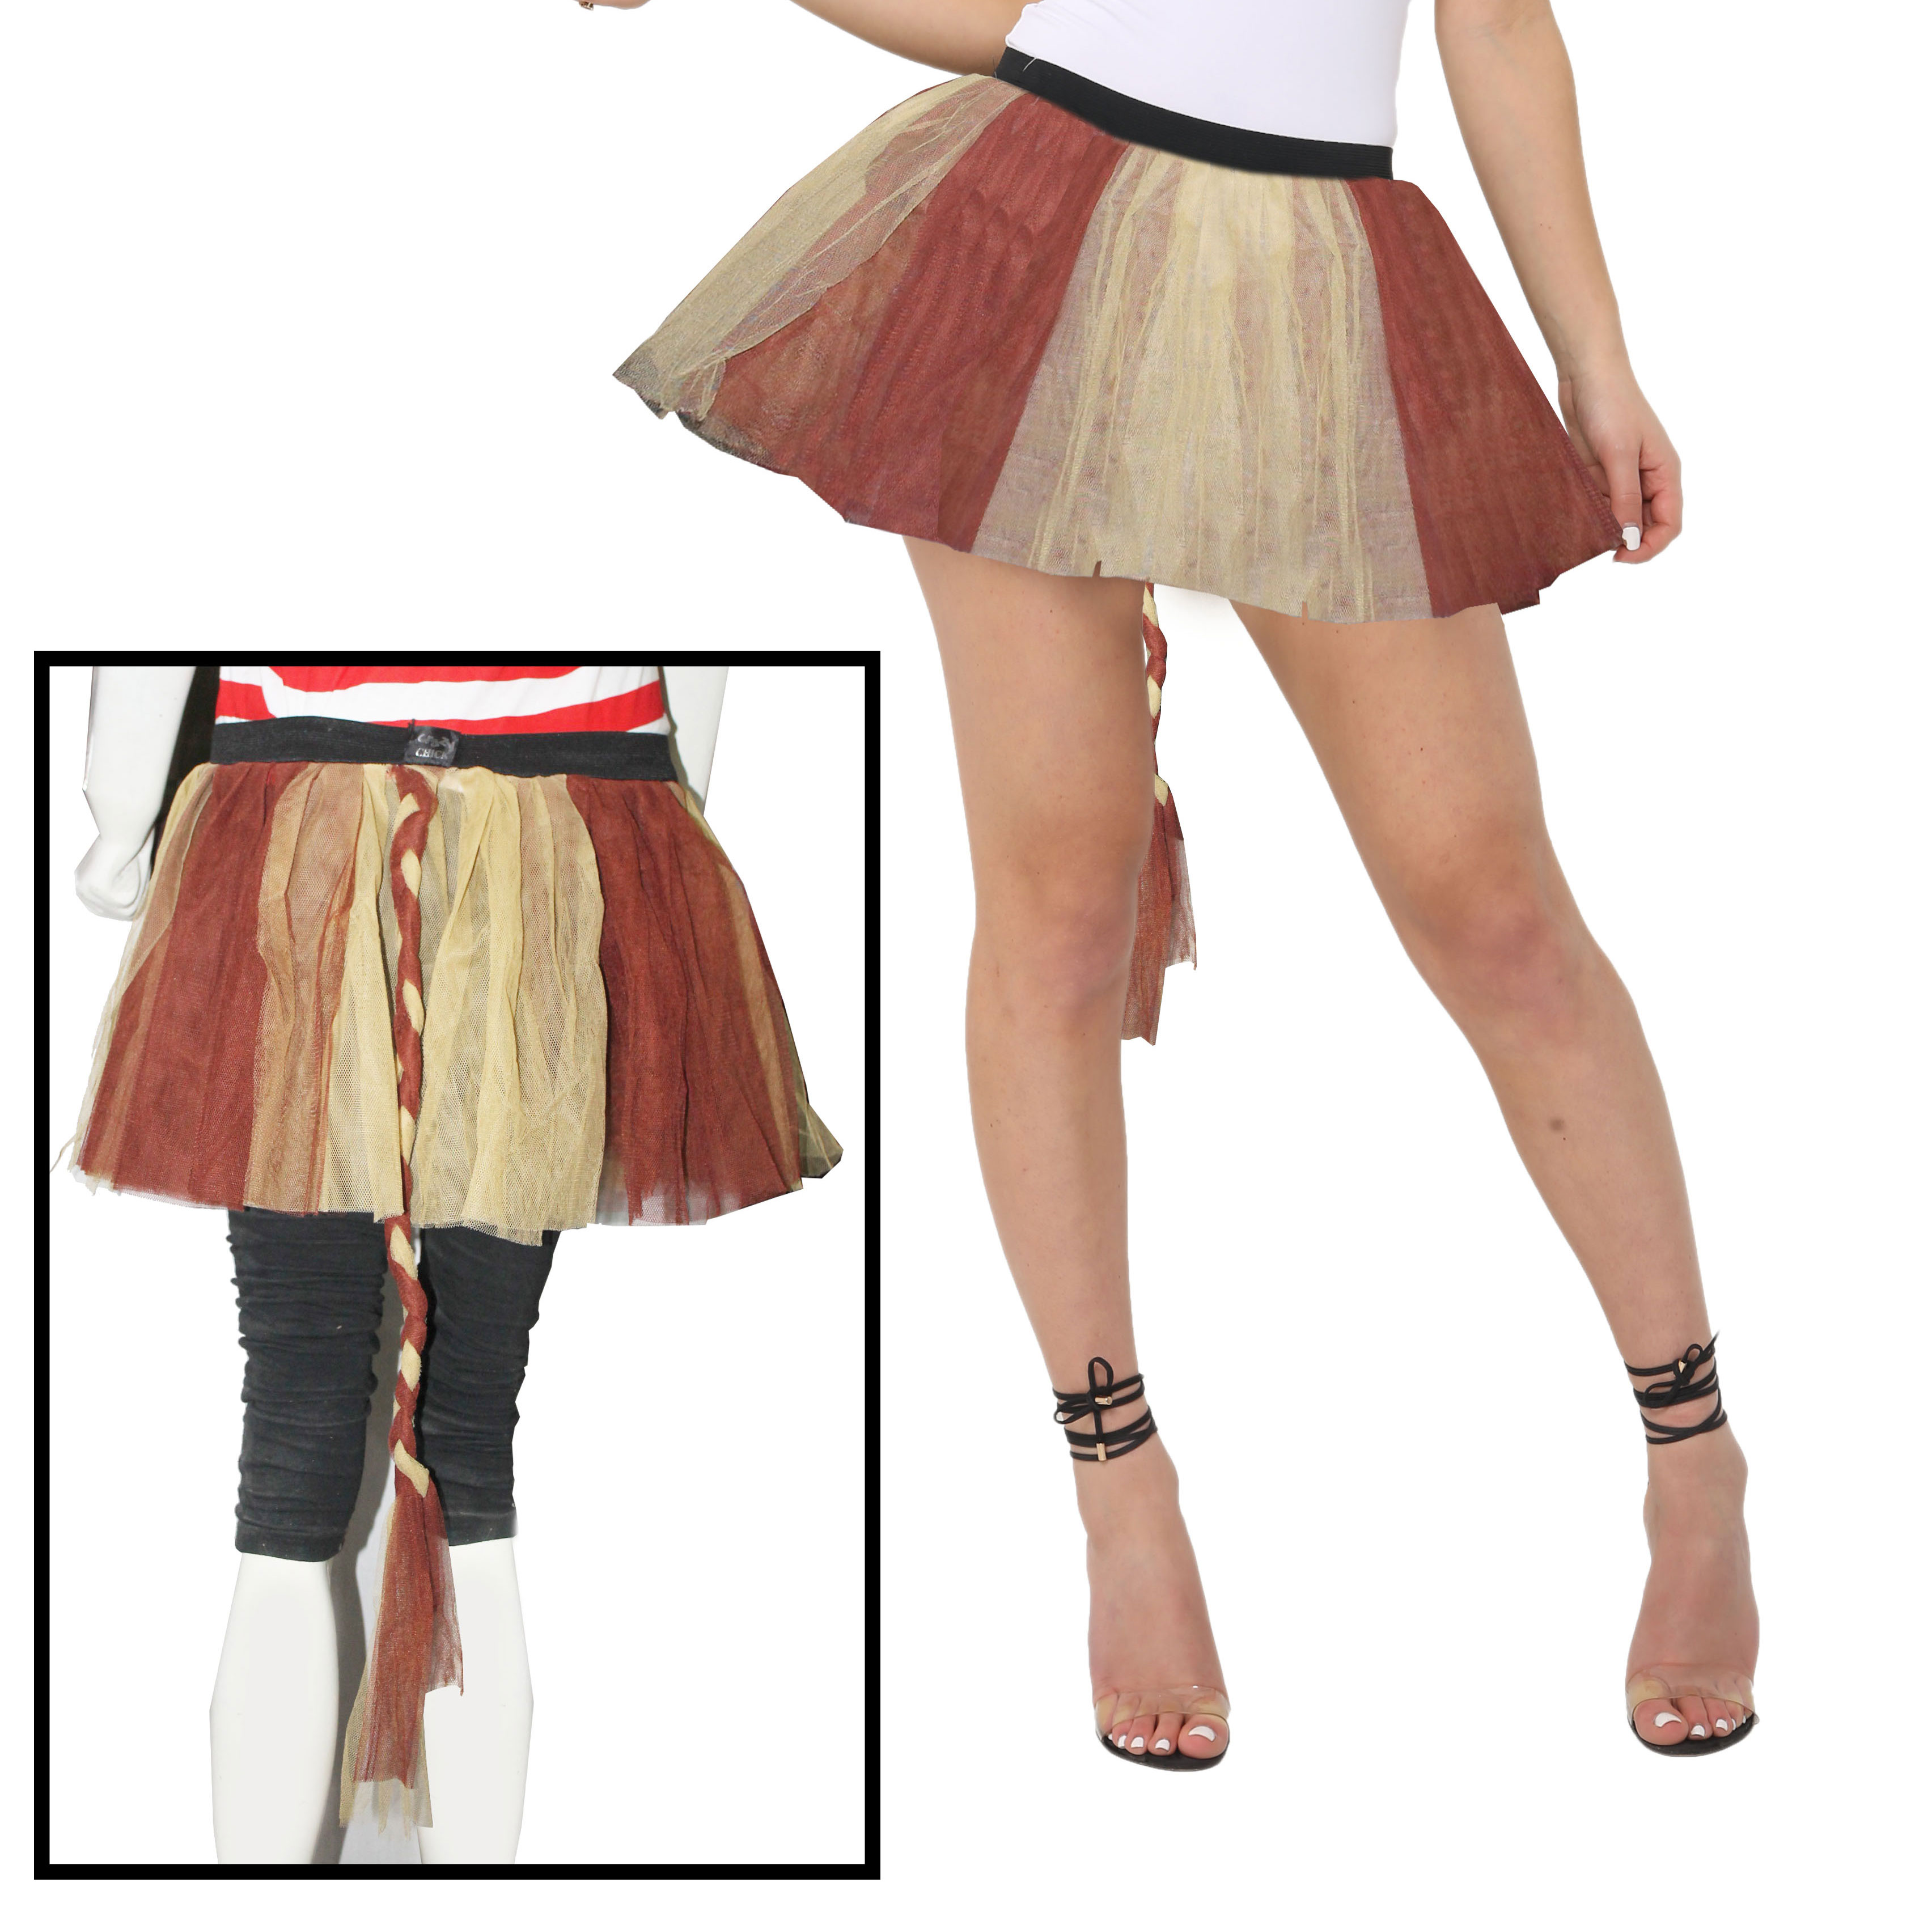 Crazy Chick Girls 3 Layers Plain Golden Brown TuTu Skirt With Tail